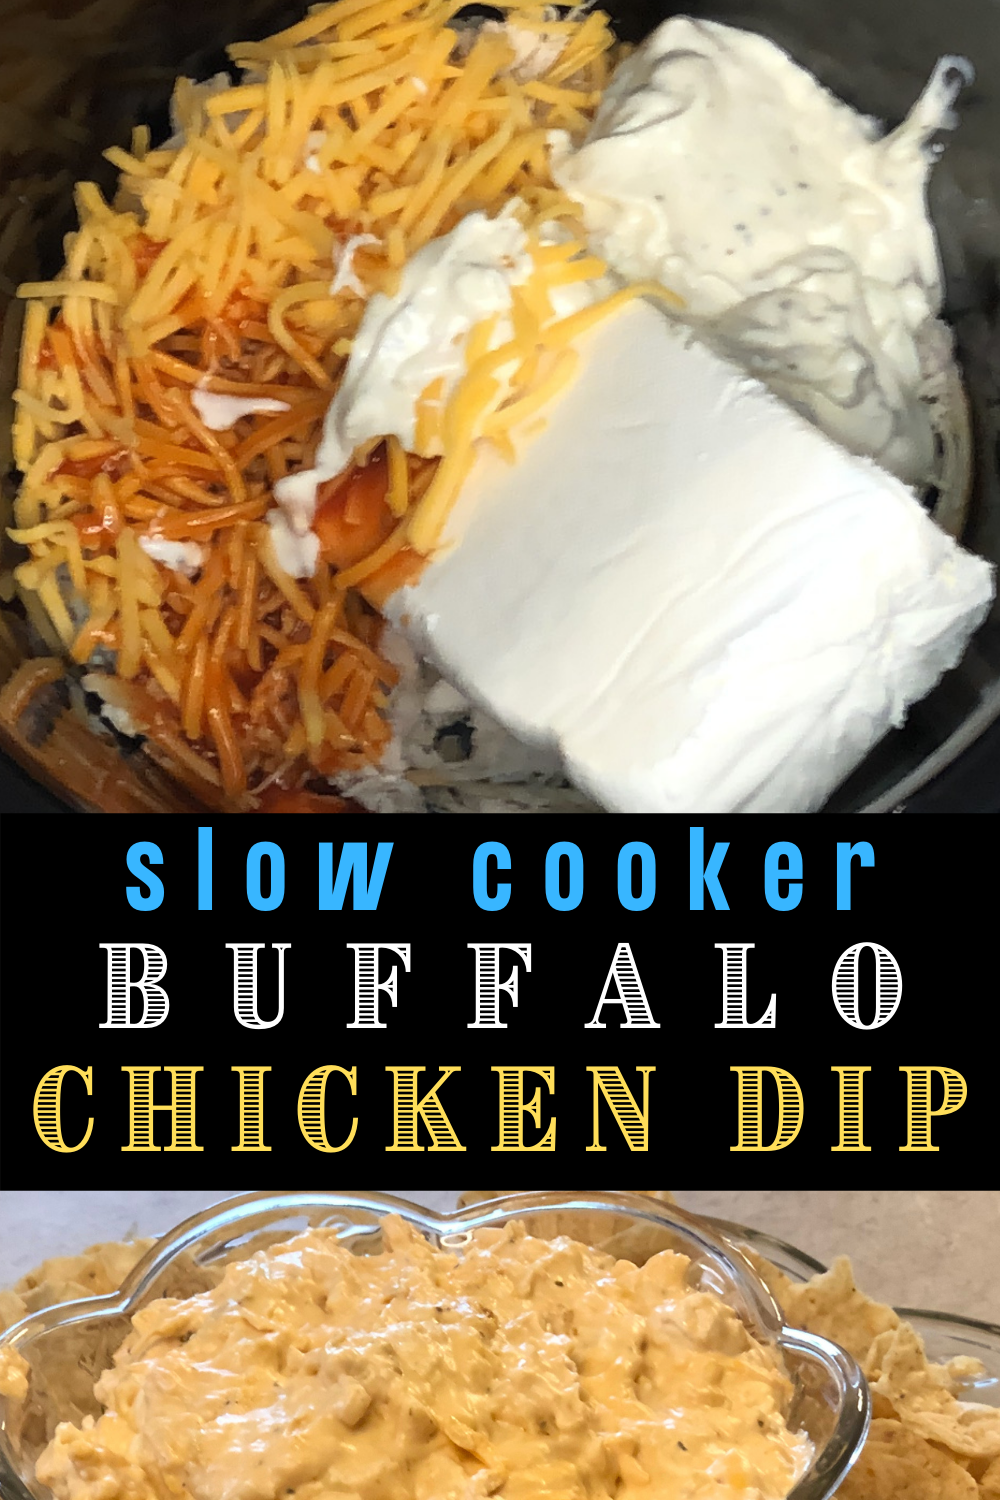 This slow cooker buffalo chicken dip is so fast and easy anyone can make it with 5 simple ingredients. If you need party food appetizers pair this dip with tortilla chips or celery sticks. I also like to use this dip for pot luck side dishes. Just heat it up at the party or warm it up at home before hand. To see this recipe or any of my other party ideas visit my blog at VanahLynn.com. You will find free printable invitations, unicorn centerpieces, and birthday cake ideas.